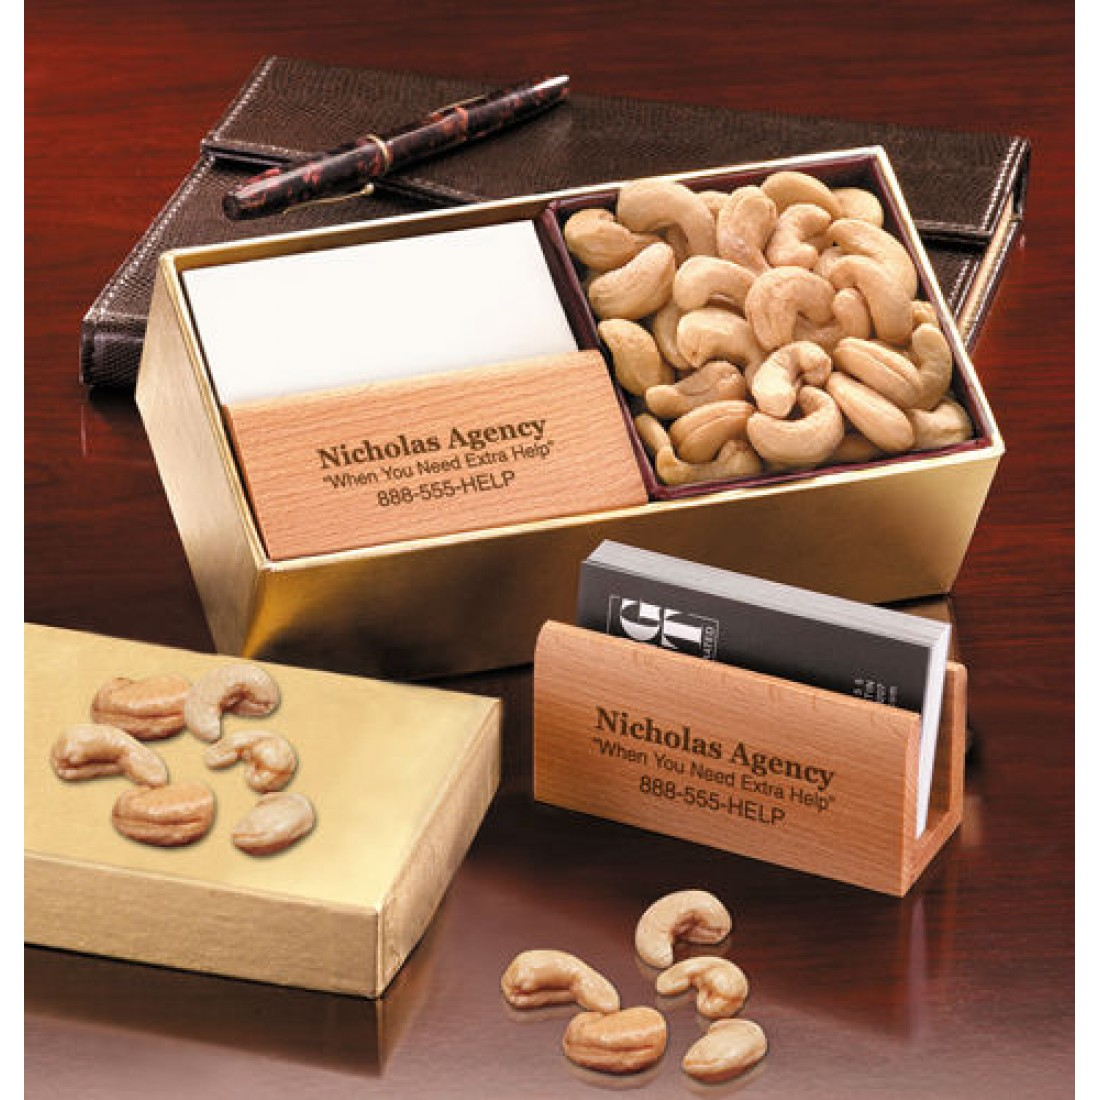 Bch102 save 20 executive business card holder with extra fancy bch102 save 20 executive business card holder with extra fancy jumbo cashews colourmoves